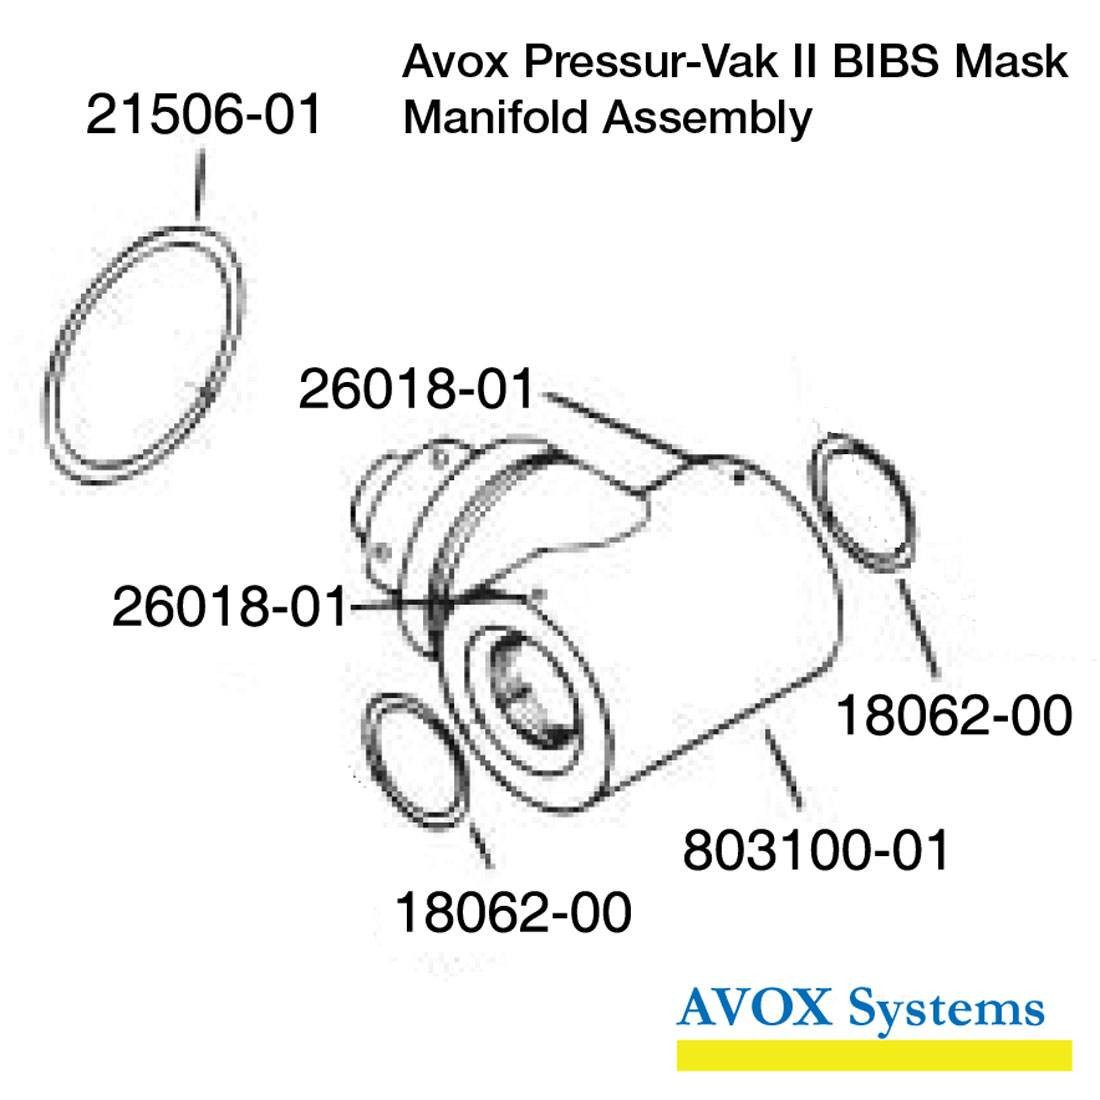 Avox 21506 01 o ring manifold to face seal avox 21506 01 o ring manifold to face seal preloader pressur vak ii manifold assembly spares preloader geenschuldenfo Gallery